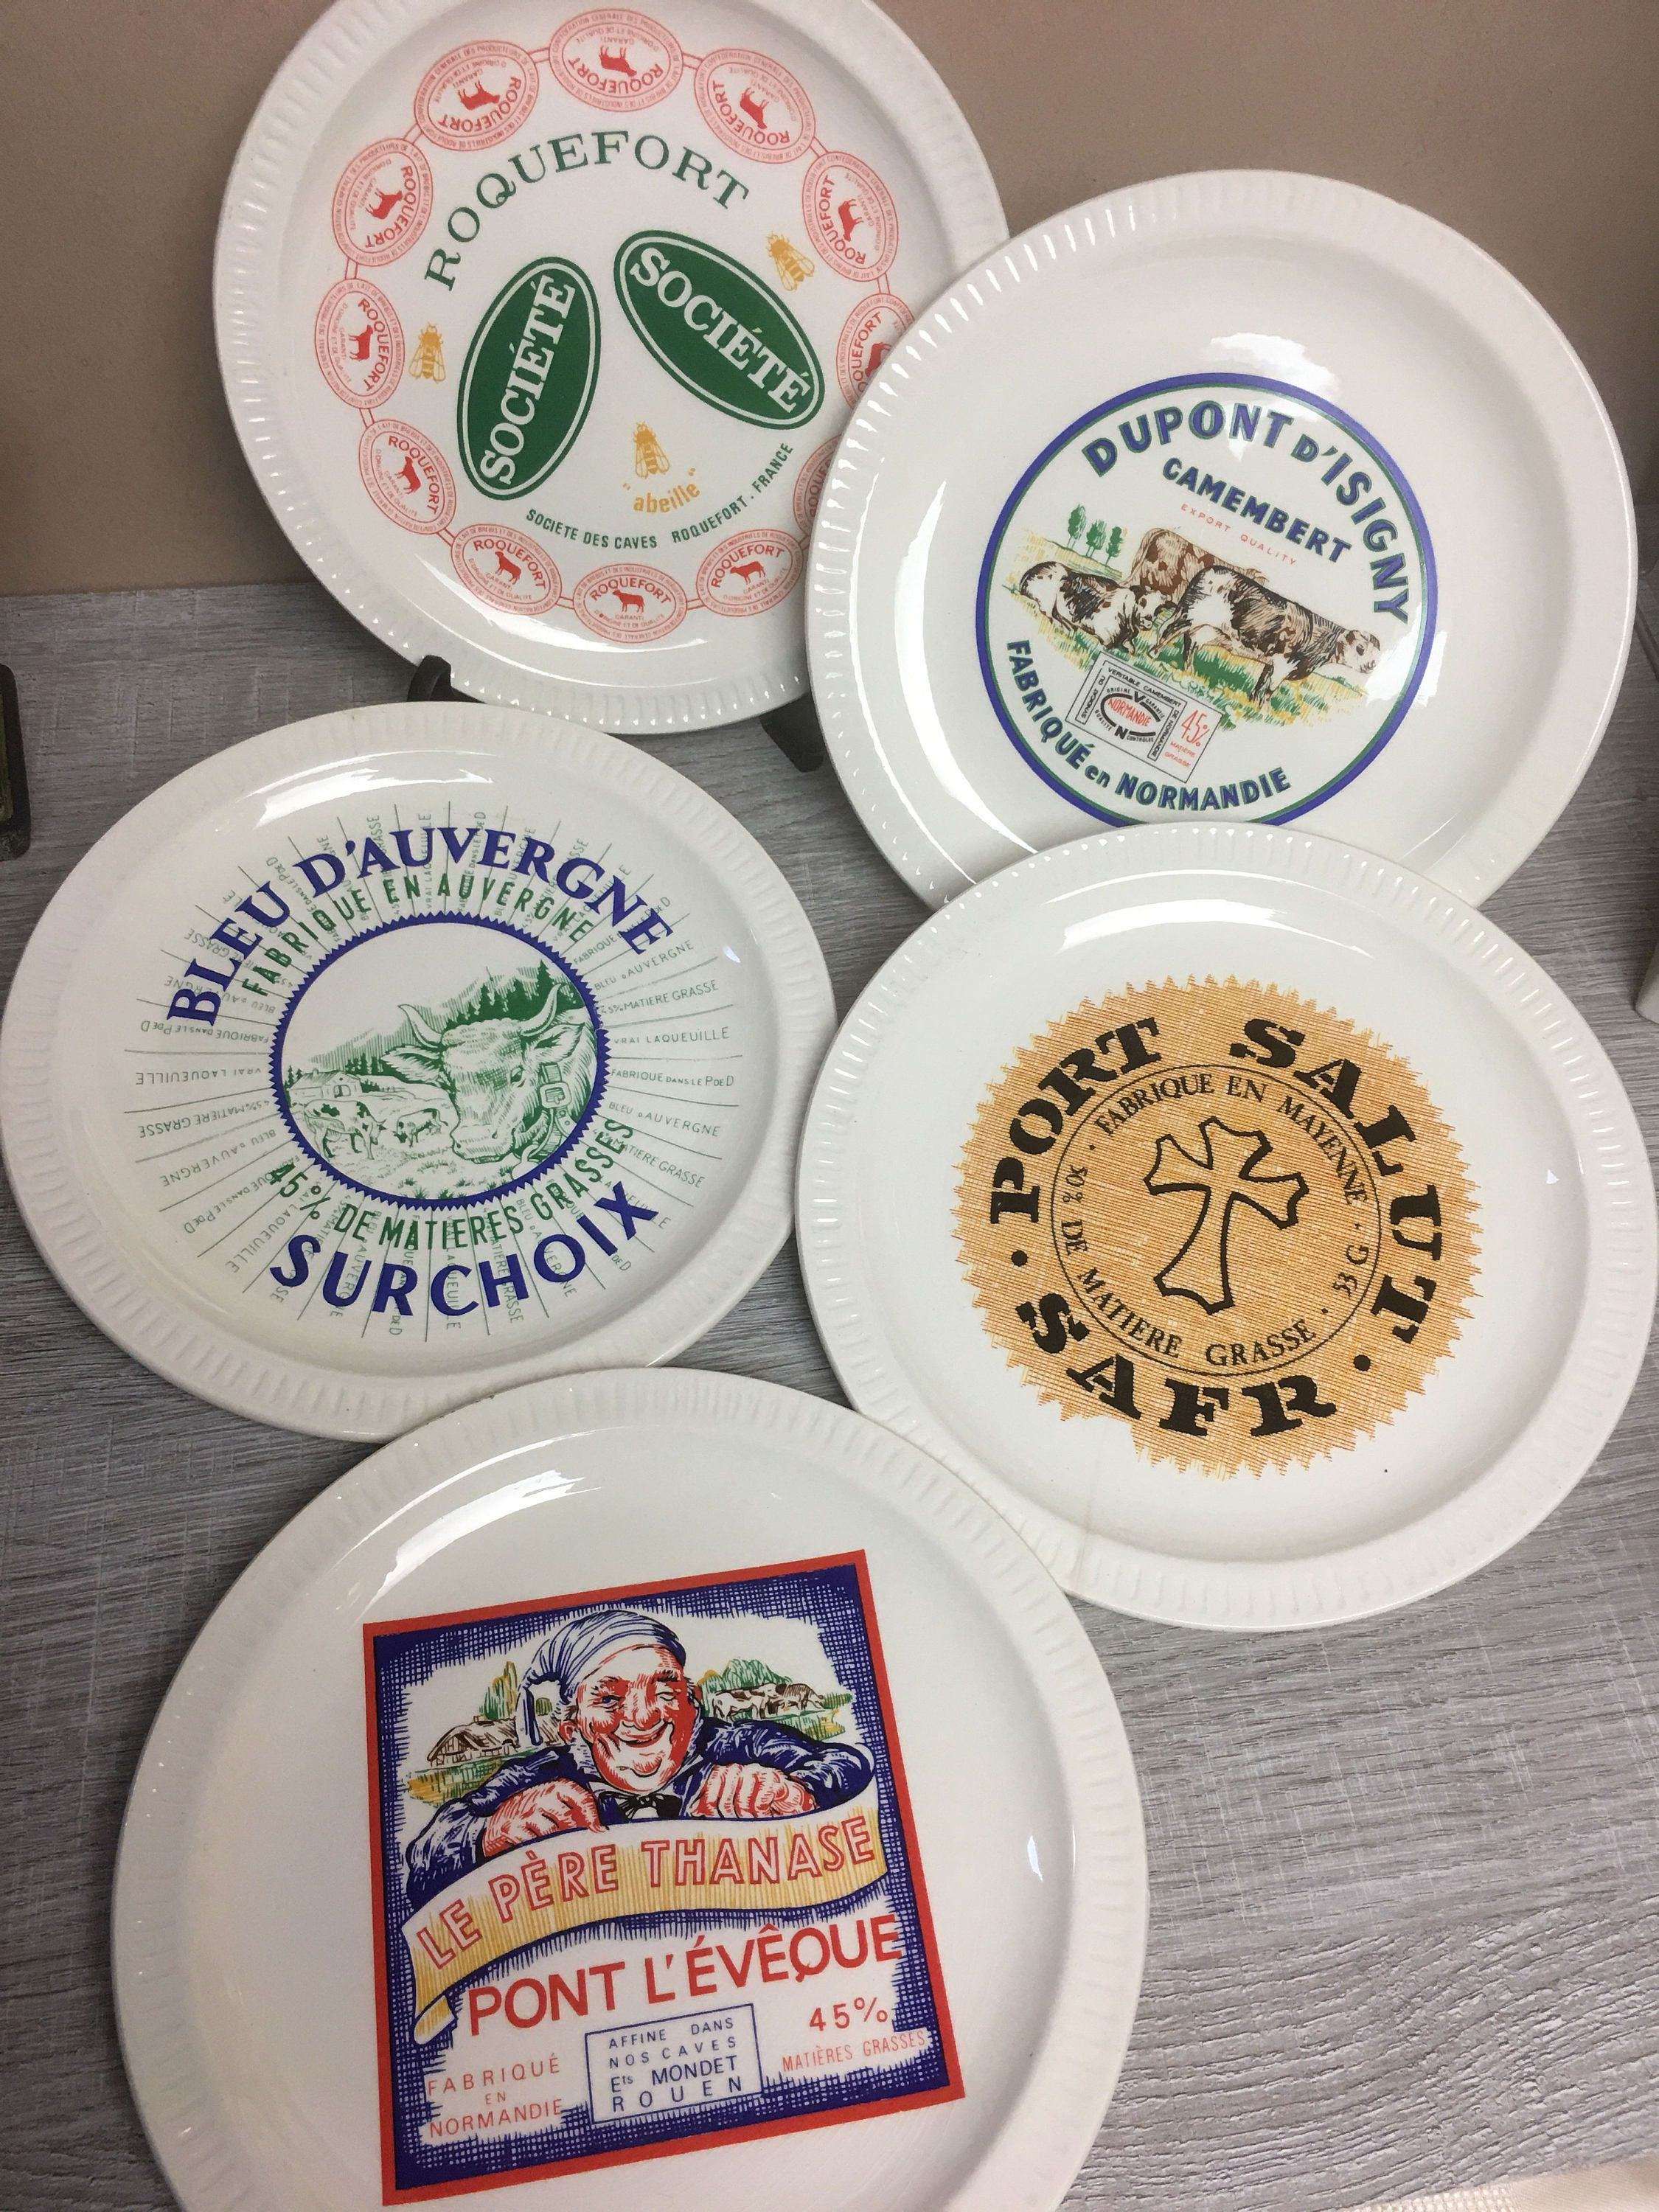 Authentic French St Amand Cheese Plates u201cFromages de Franceu201d Set of 4 & Authentic French St Amand Cheese Plates u201cFromages de Franceu201d Set ...